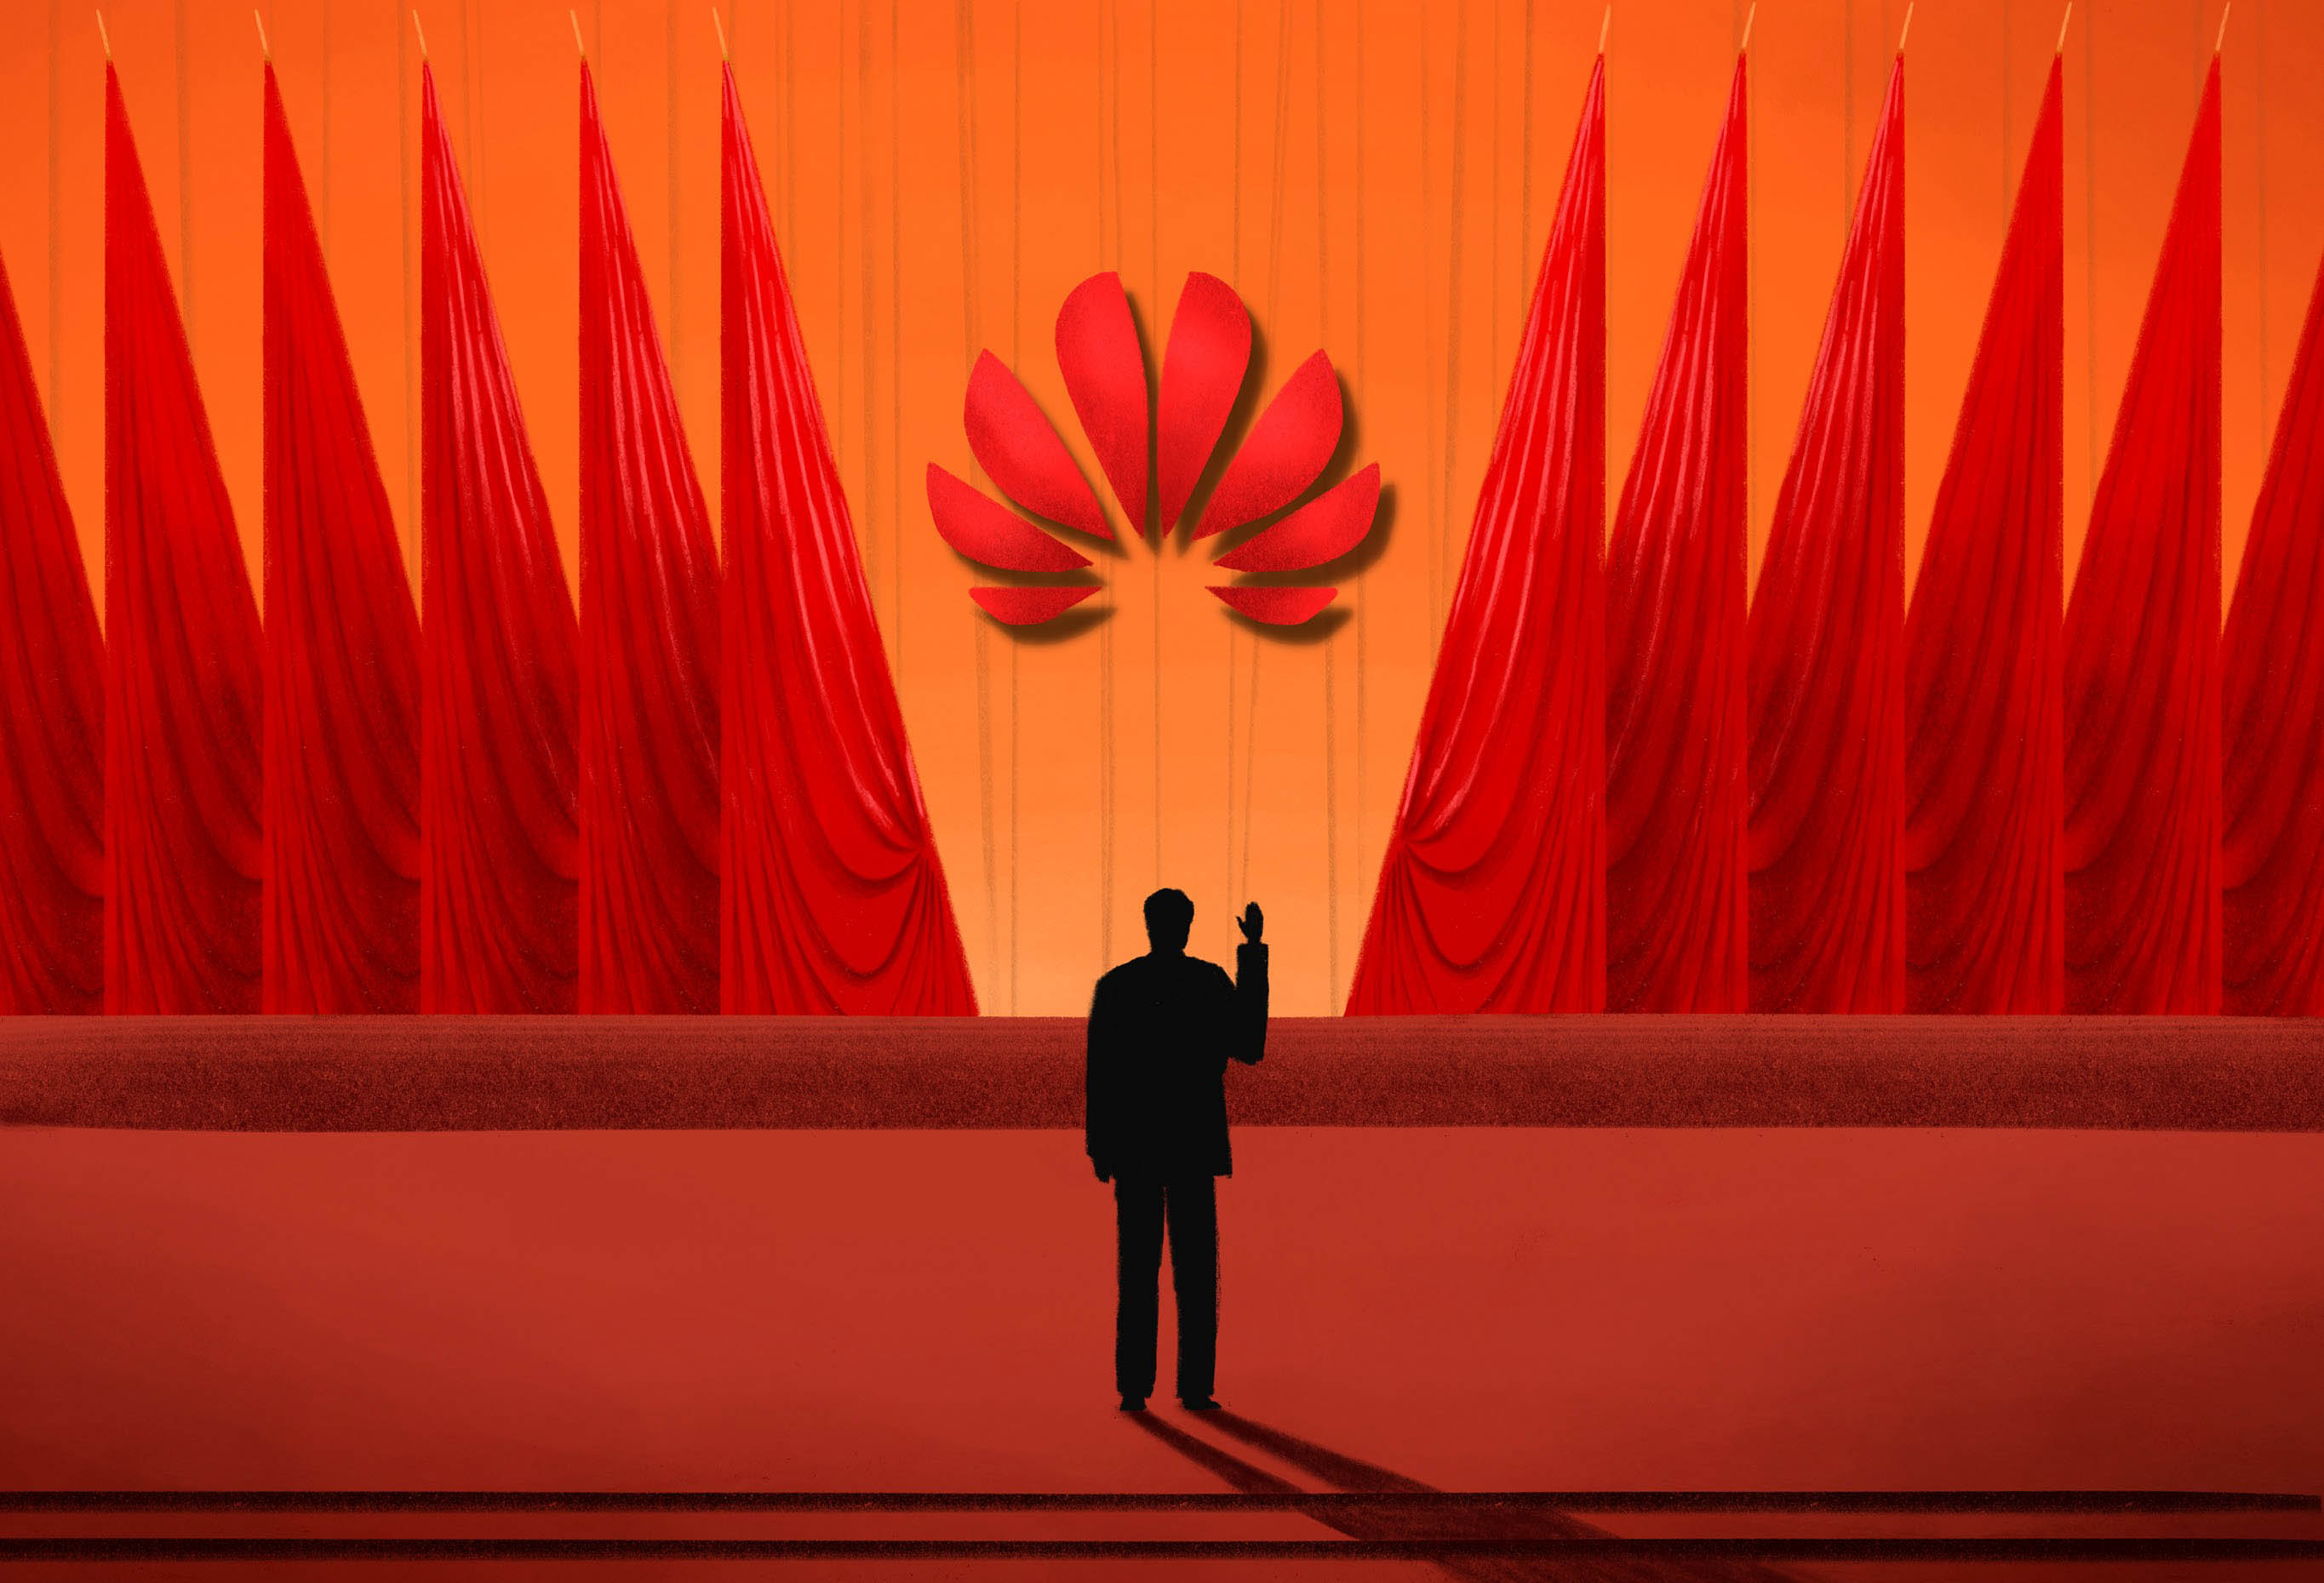 In recent months, the Trump administration has said China could use Huawei's equipment to spy on other countries, although it hasn't offered proof. Critics accuse the company of being controlled by the Chinese government. Huawei has repeatedly denied these allegations.